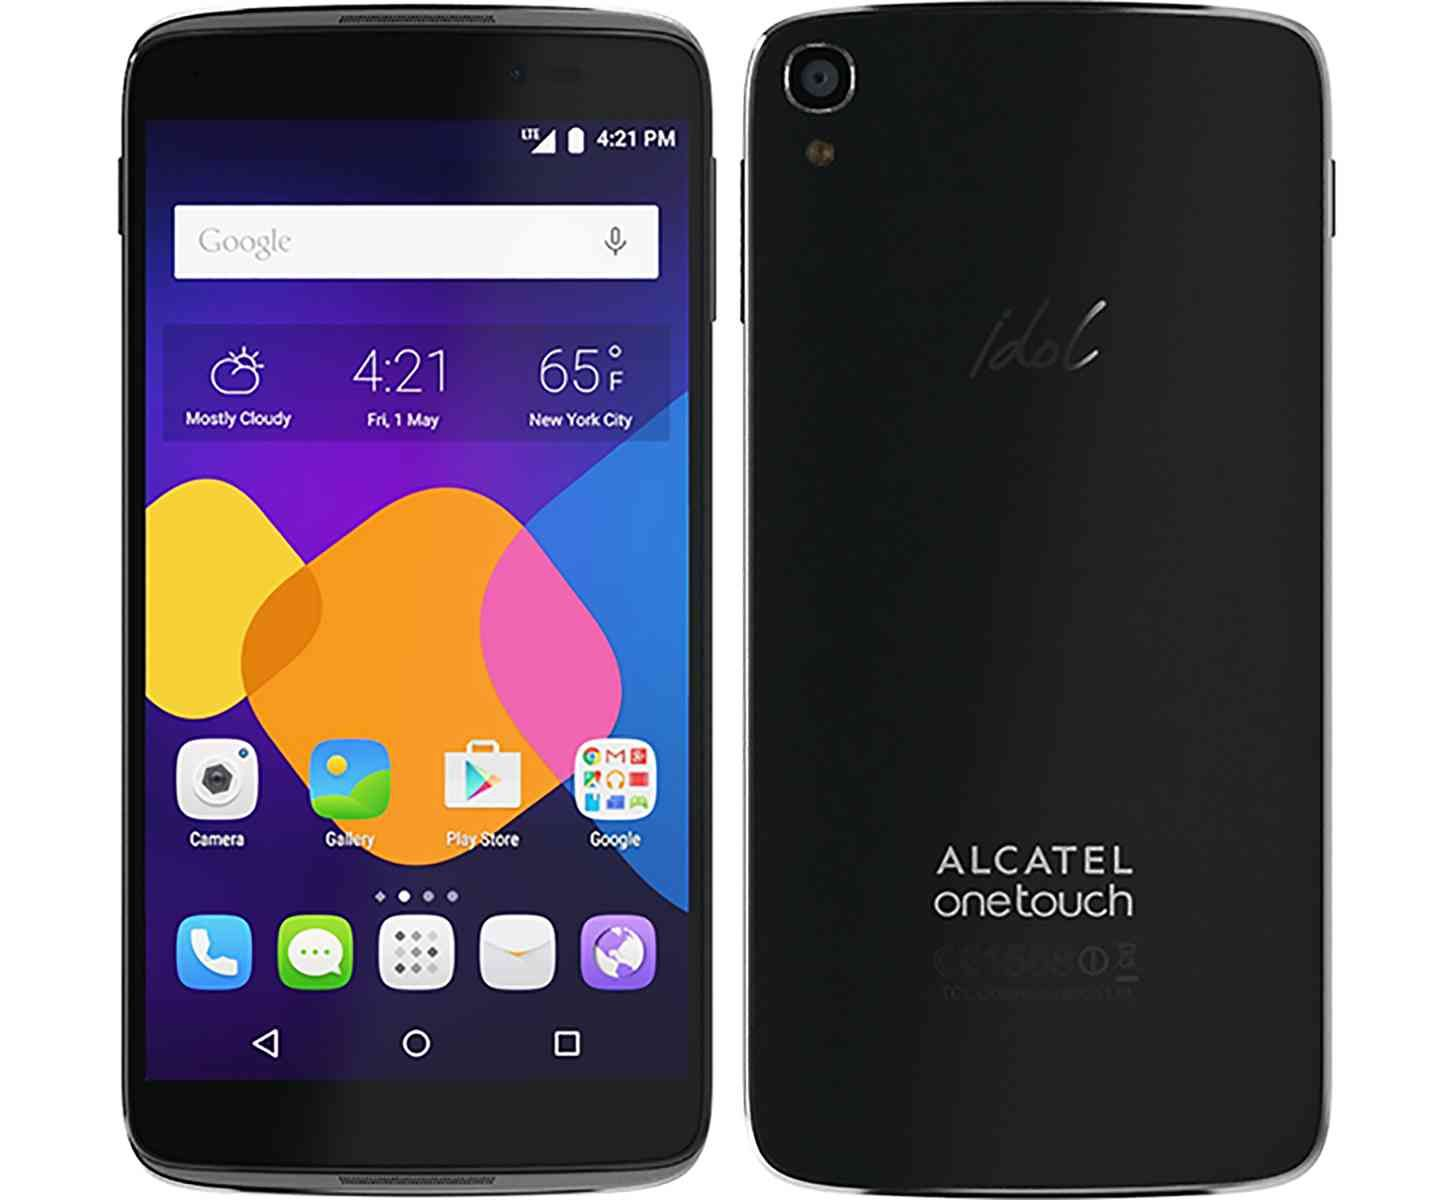 Unlock Bootloader and Root Alcatel OneTouch Idol 3 - How To